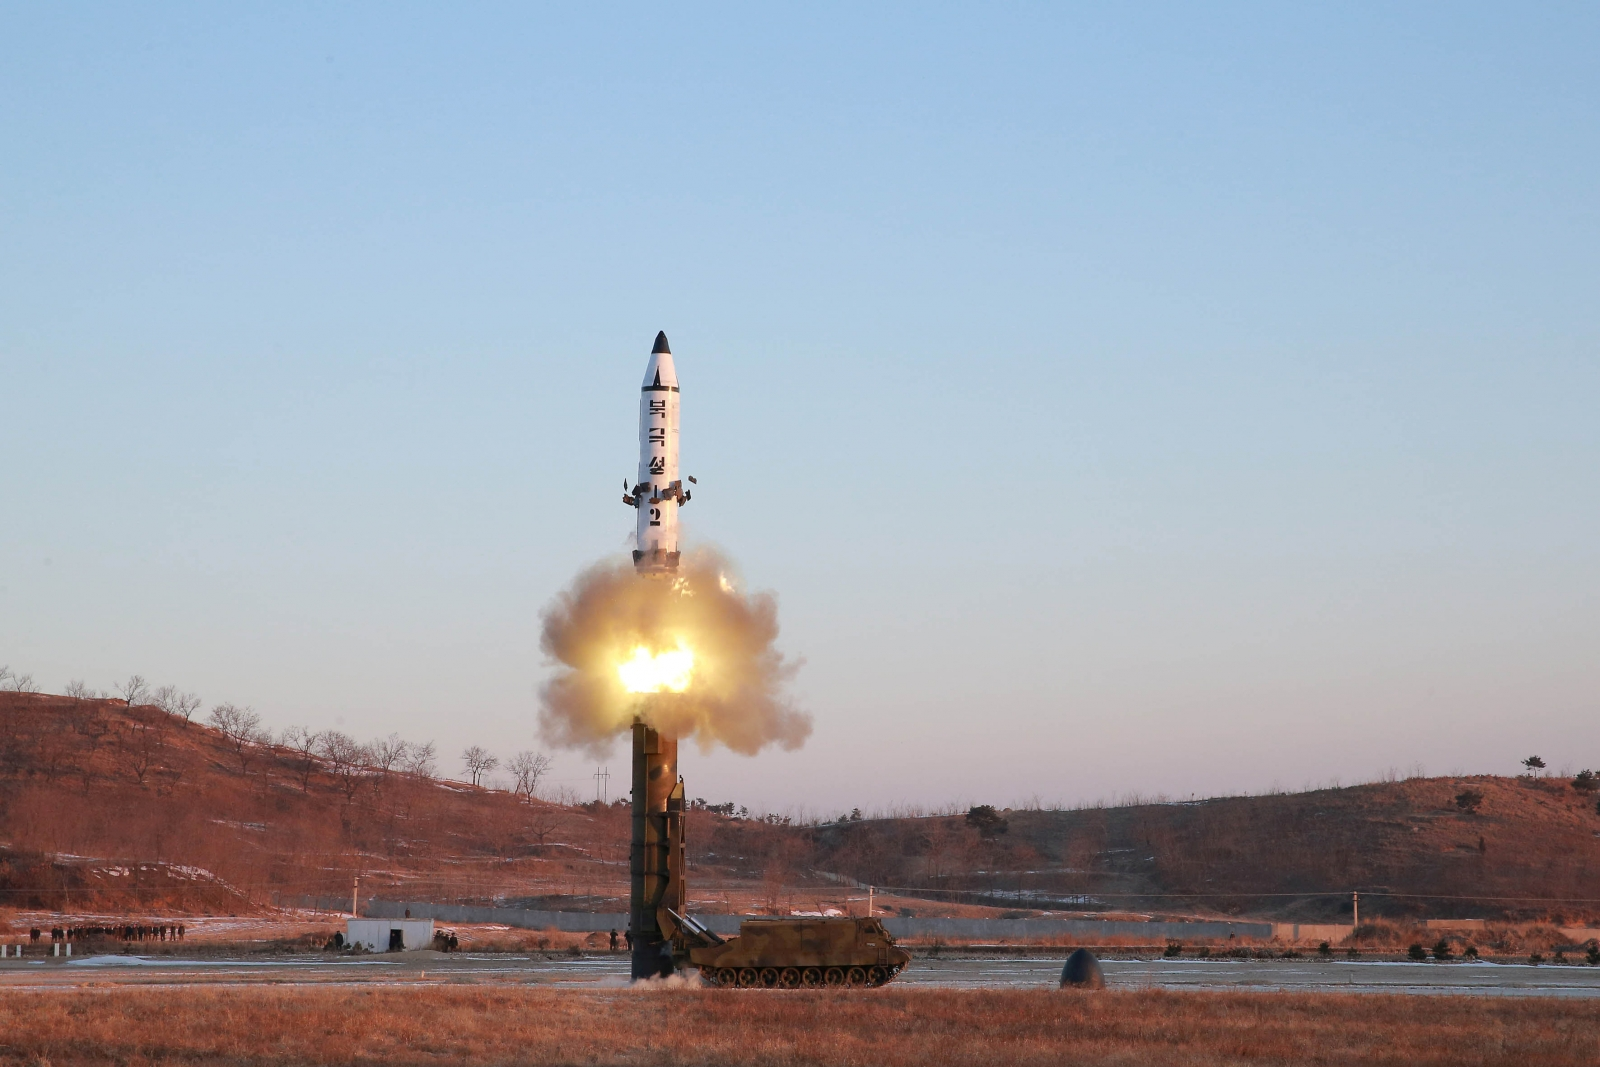 N. Korea Conducted Missile Test in Anju, not Pukchang